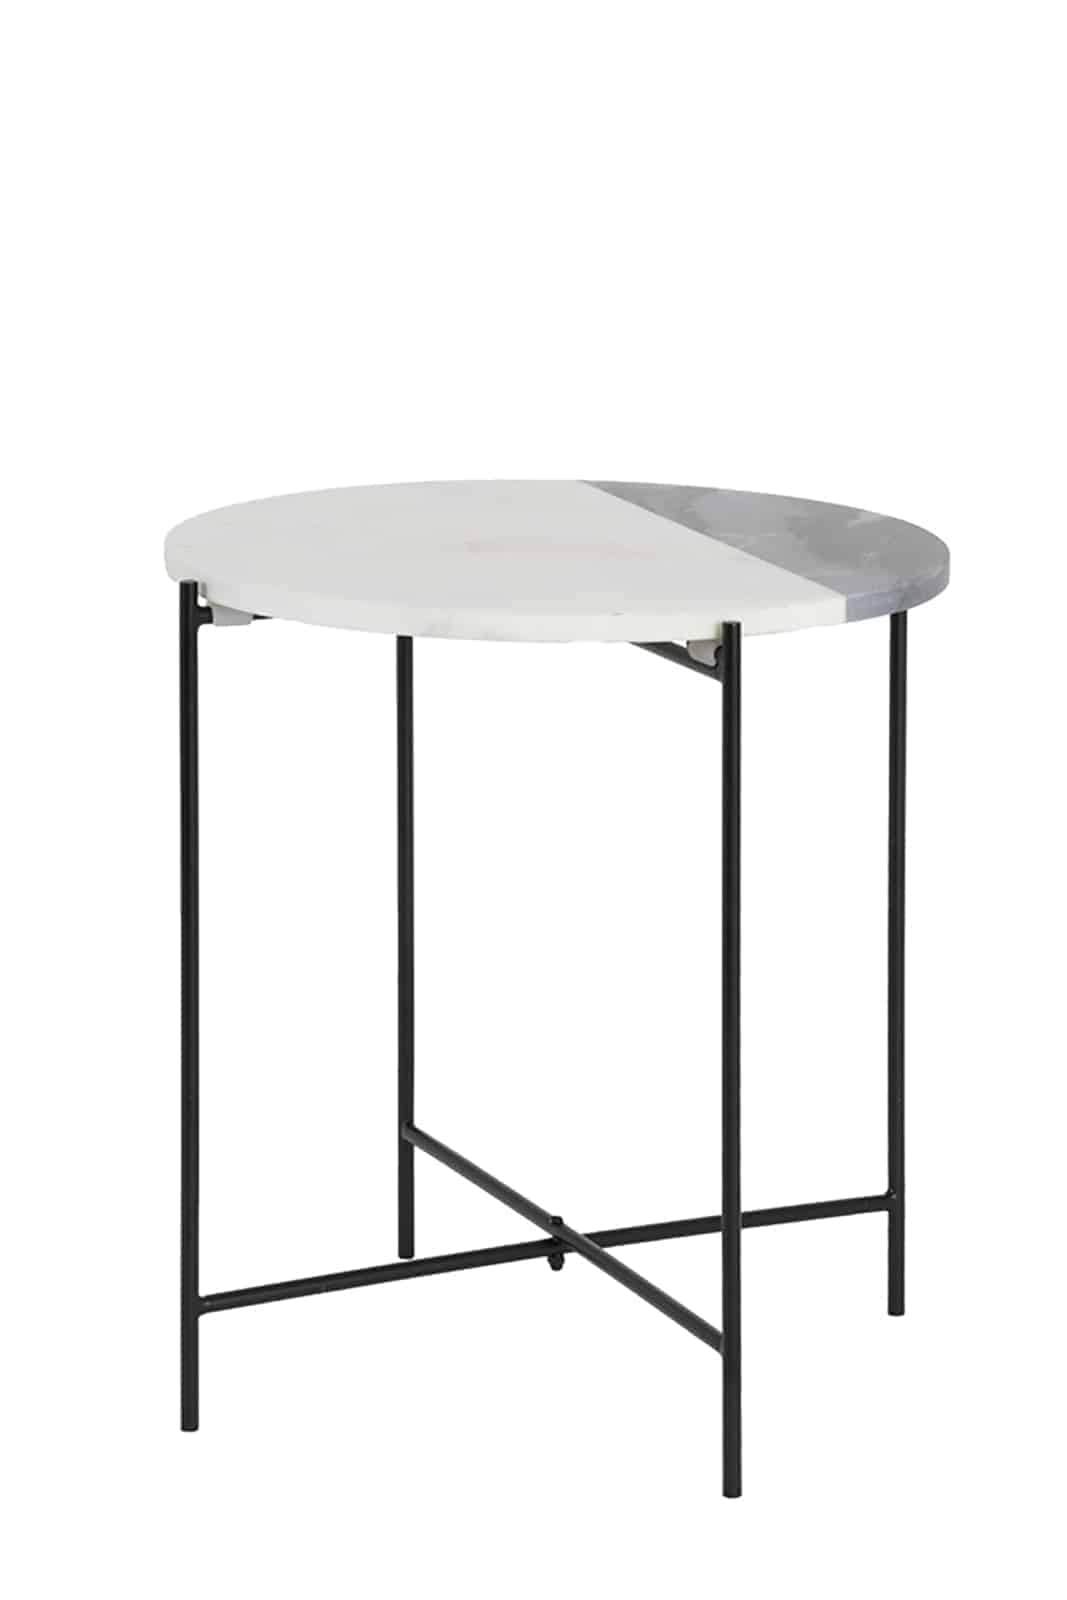 quillon marble side table with black legs